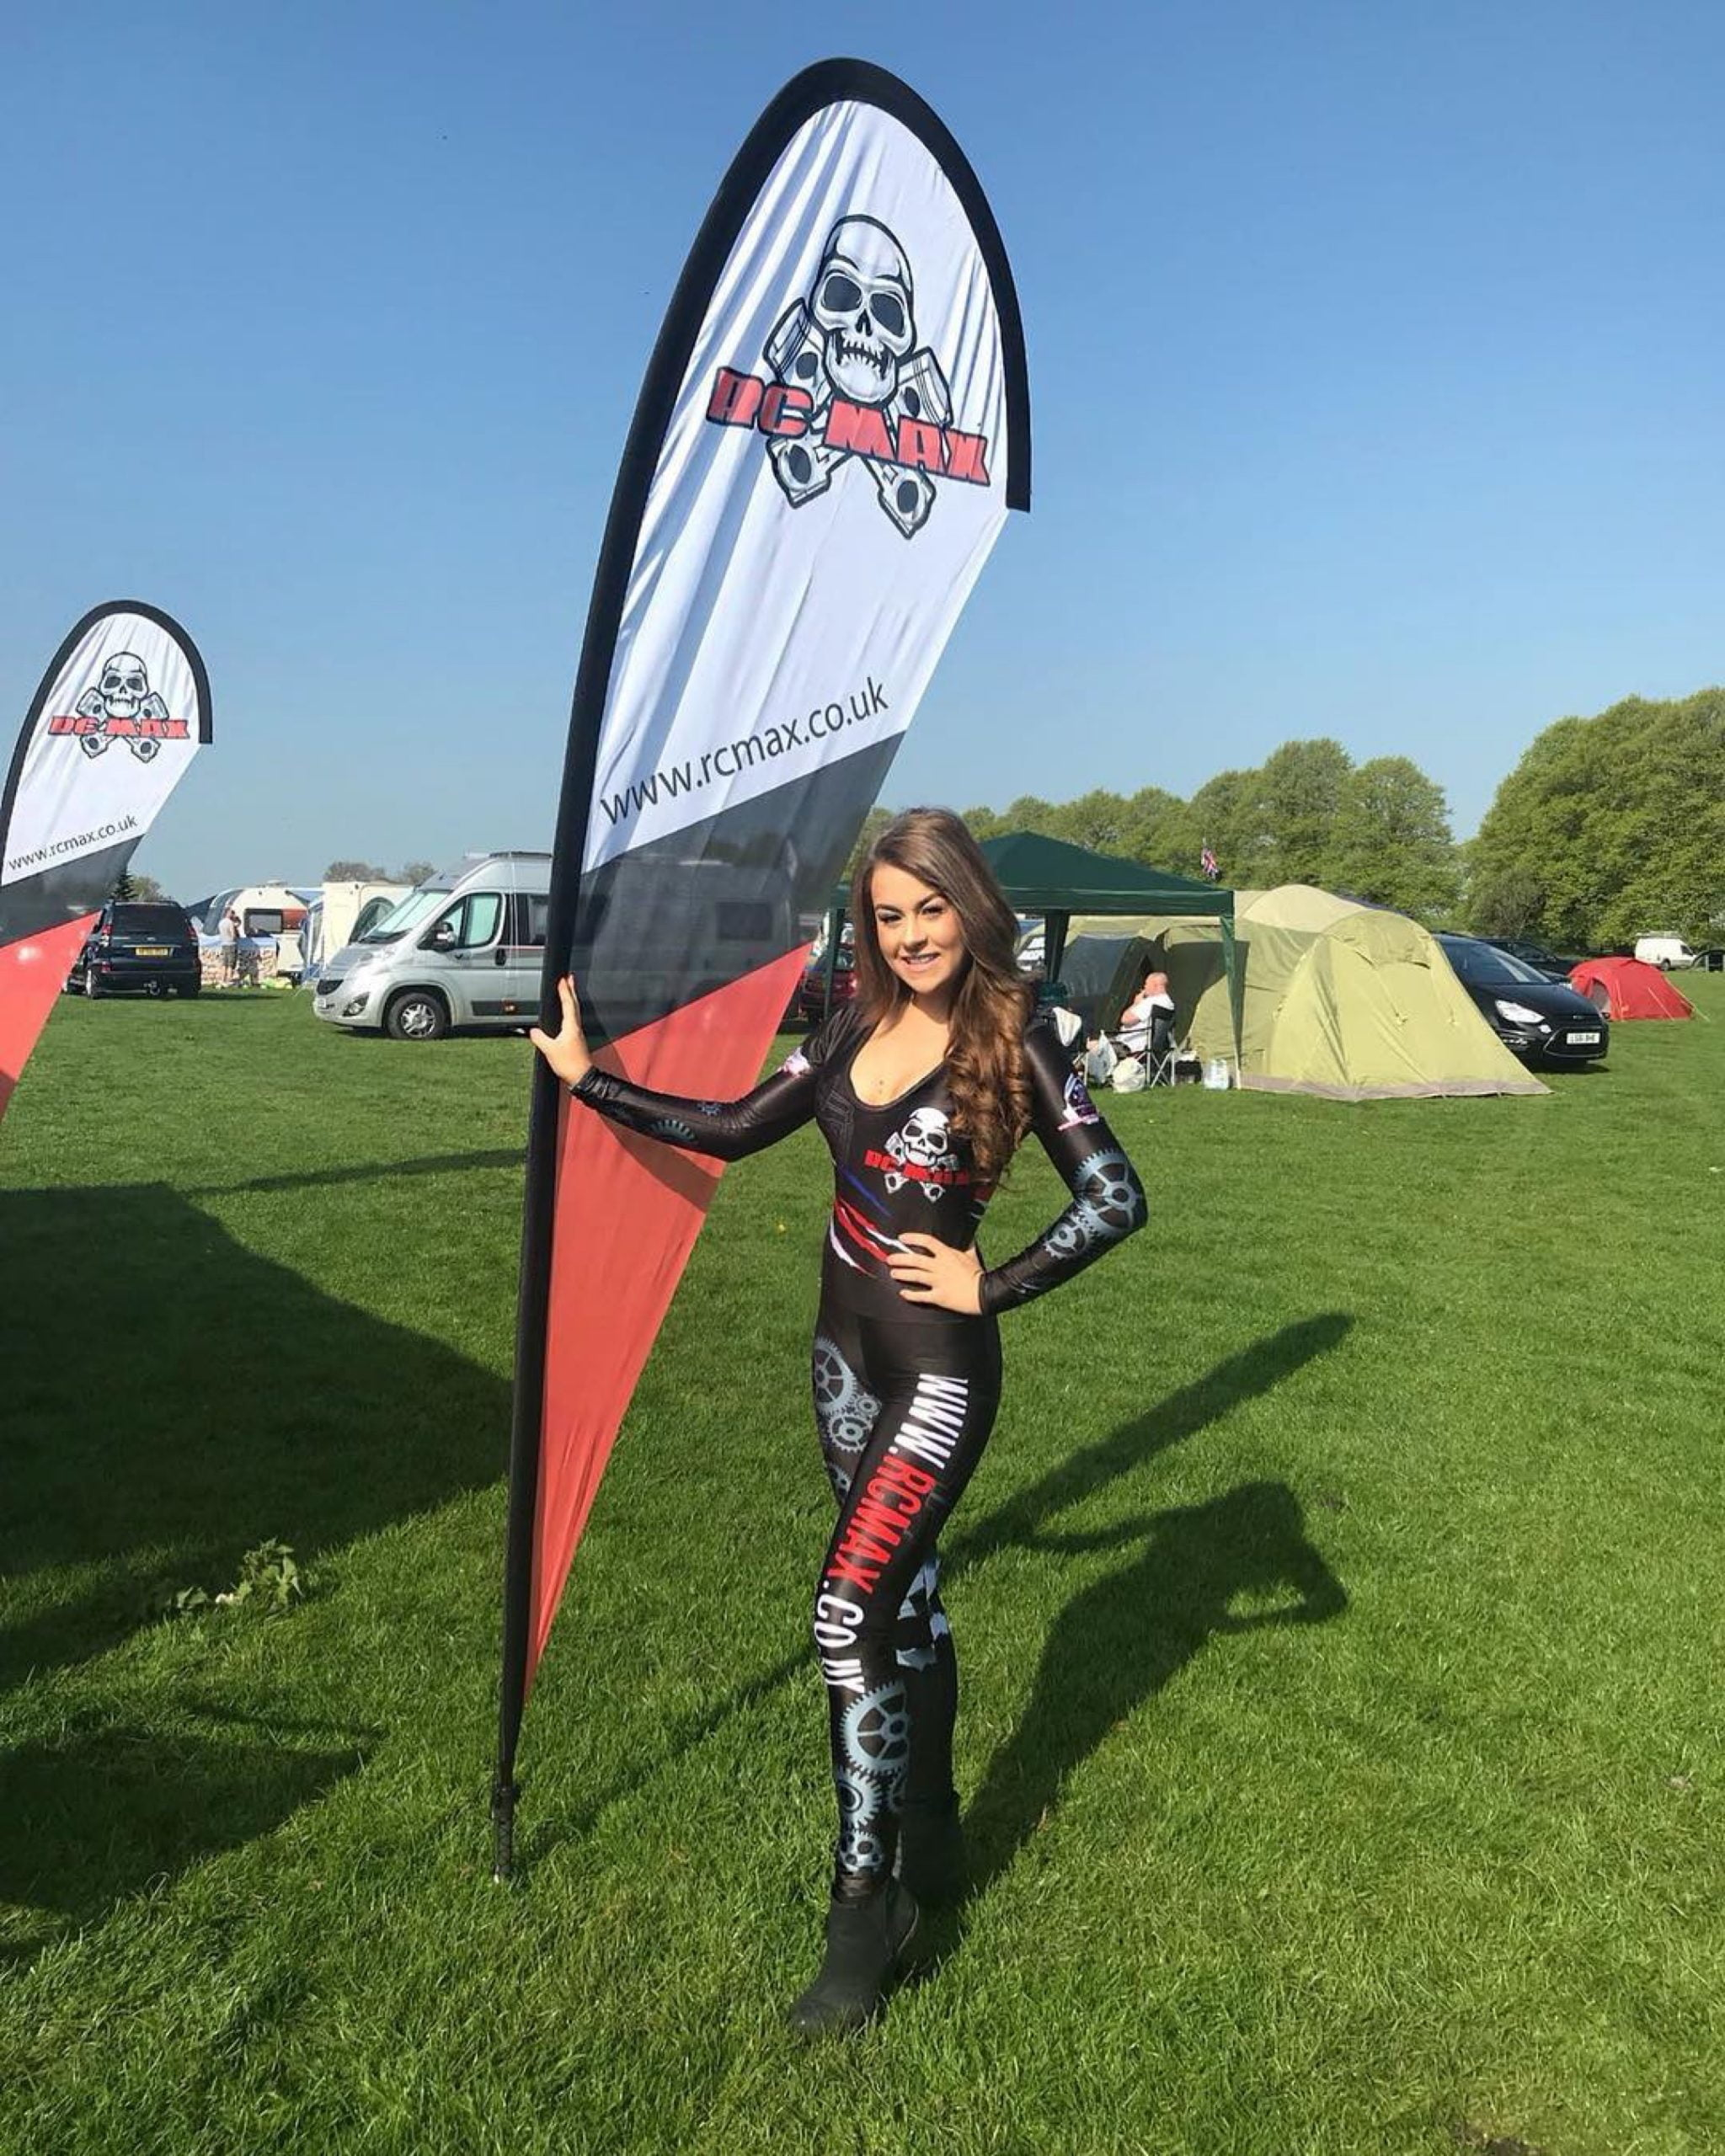 Promotional Model with RC MAX in Northants for BashFest on 5th May